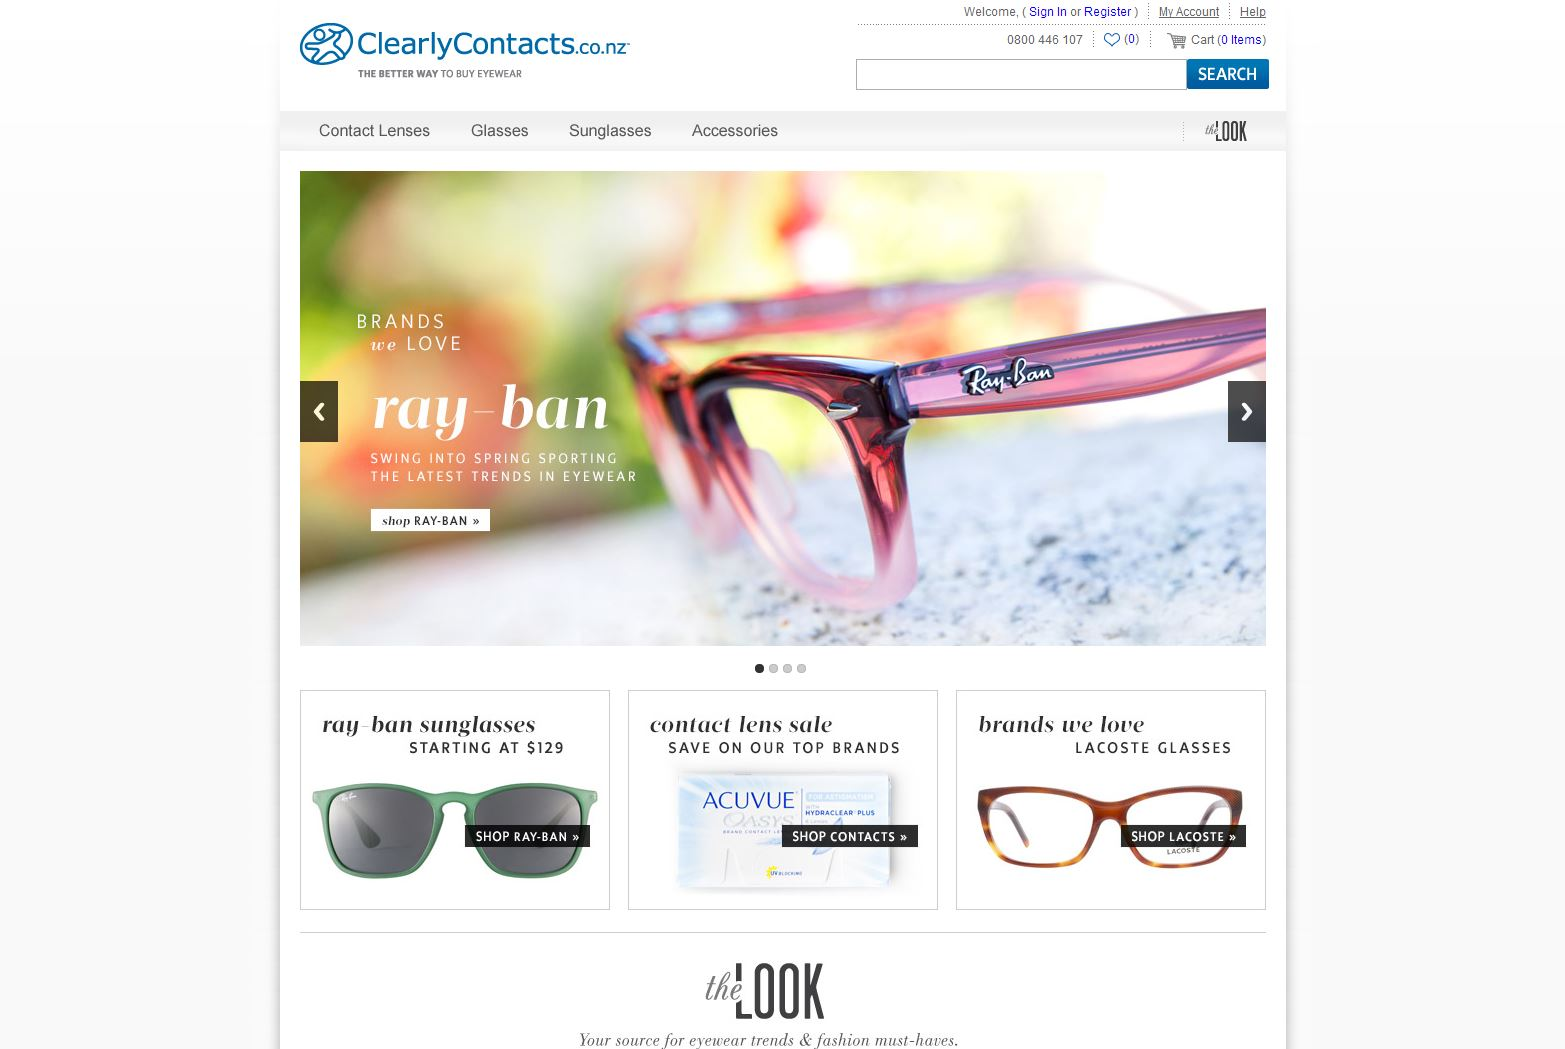 ClearlyContacts